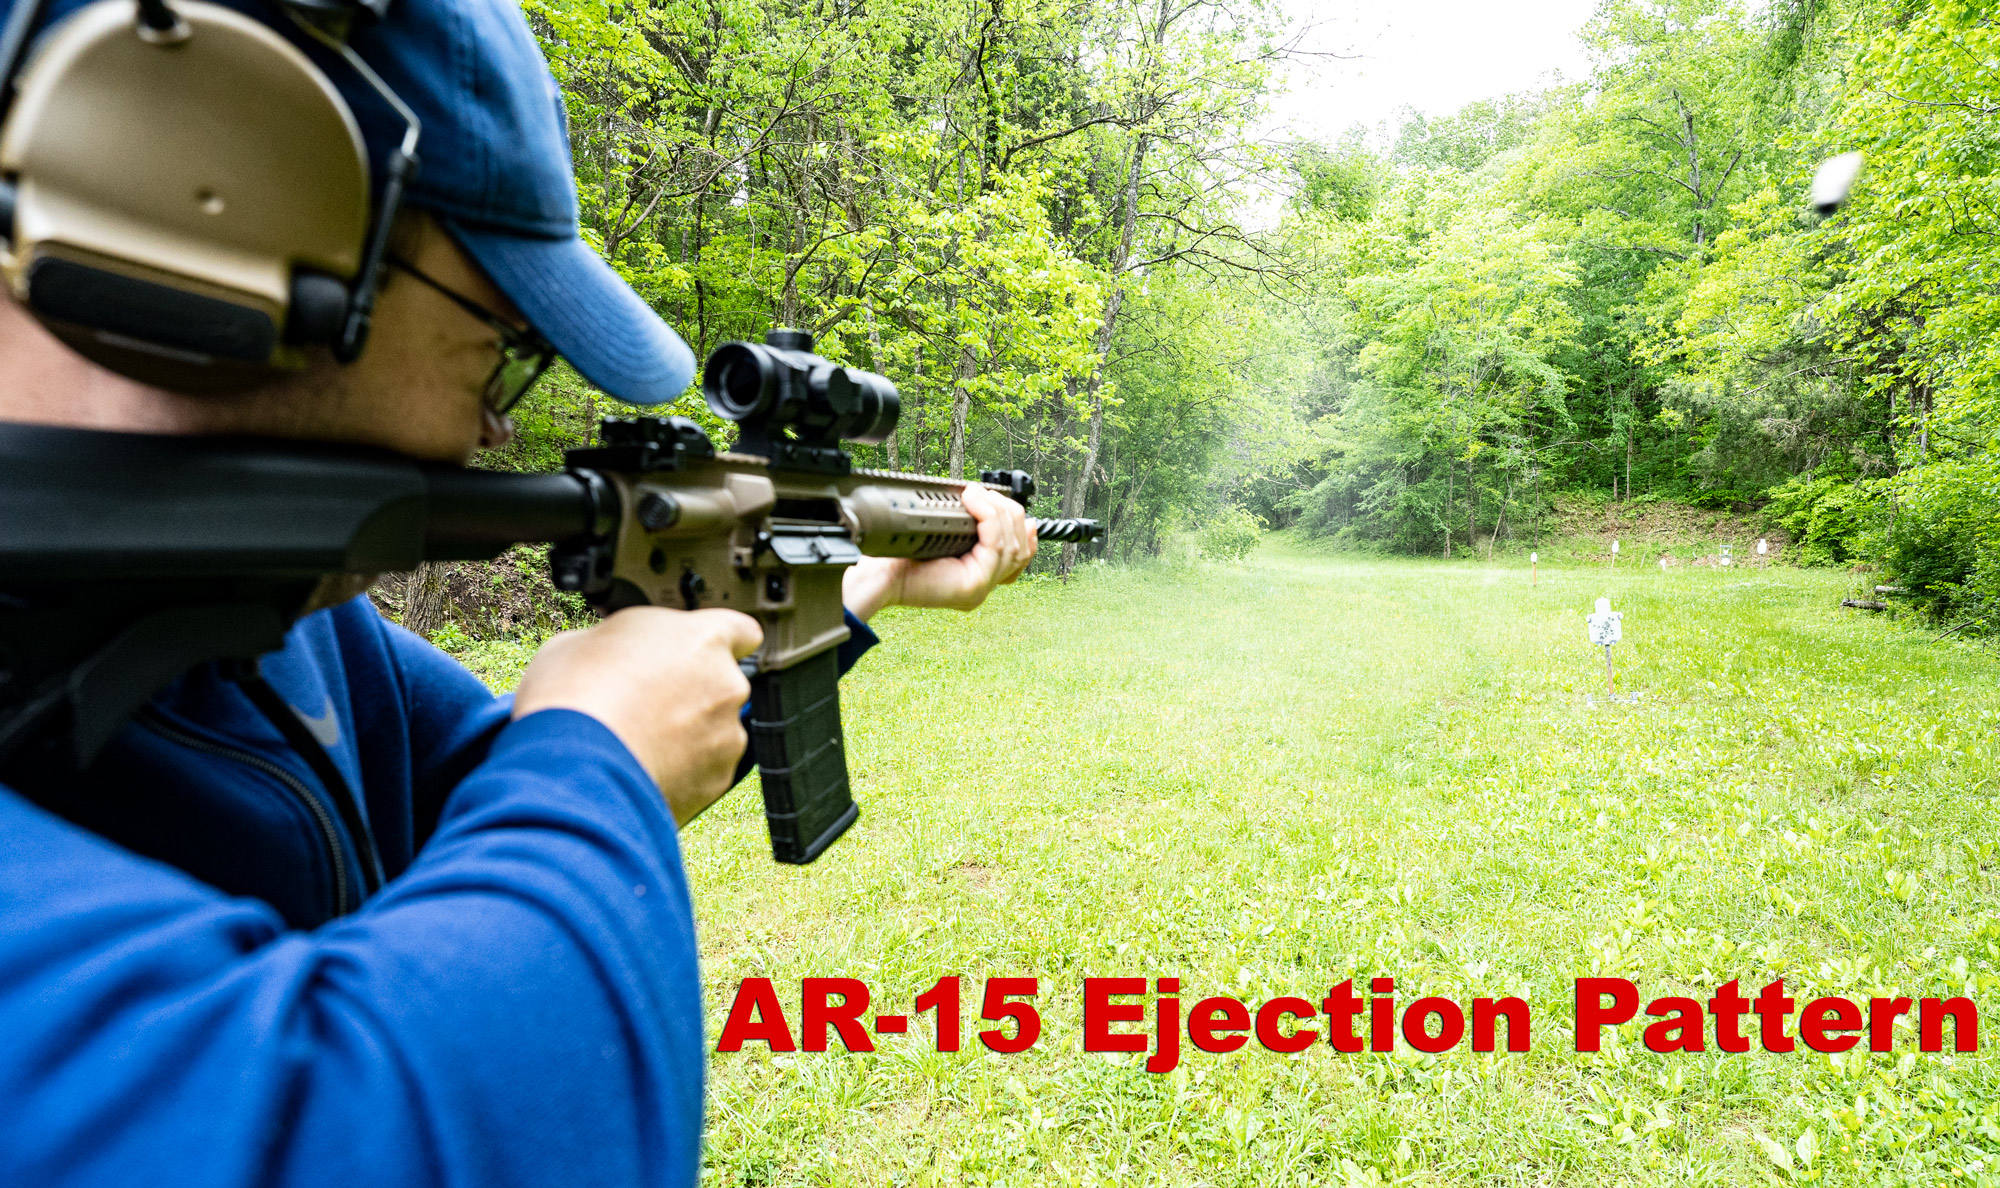 Shooting an AR-15 at the range and ejecting spent casings